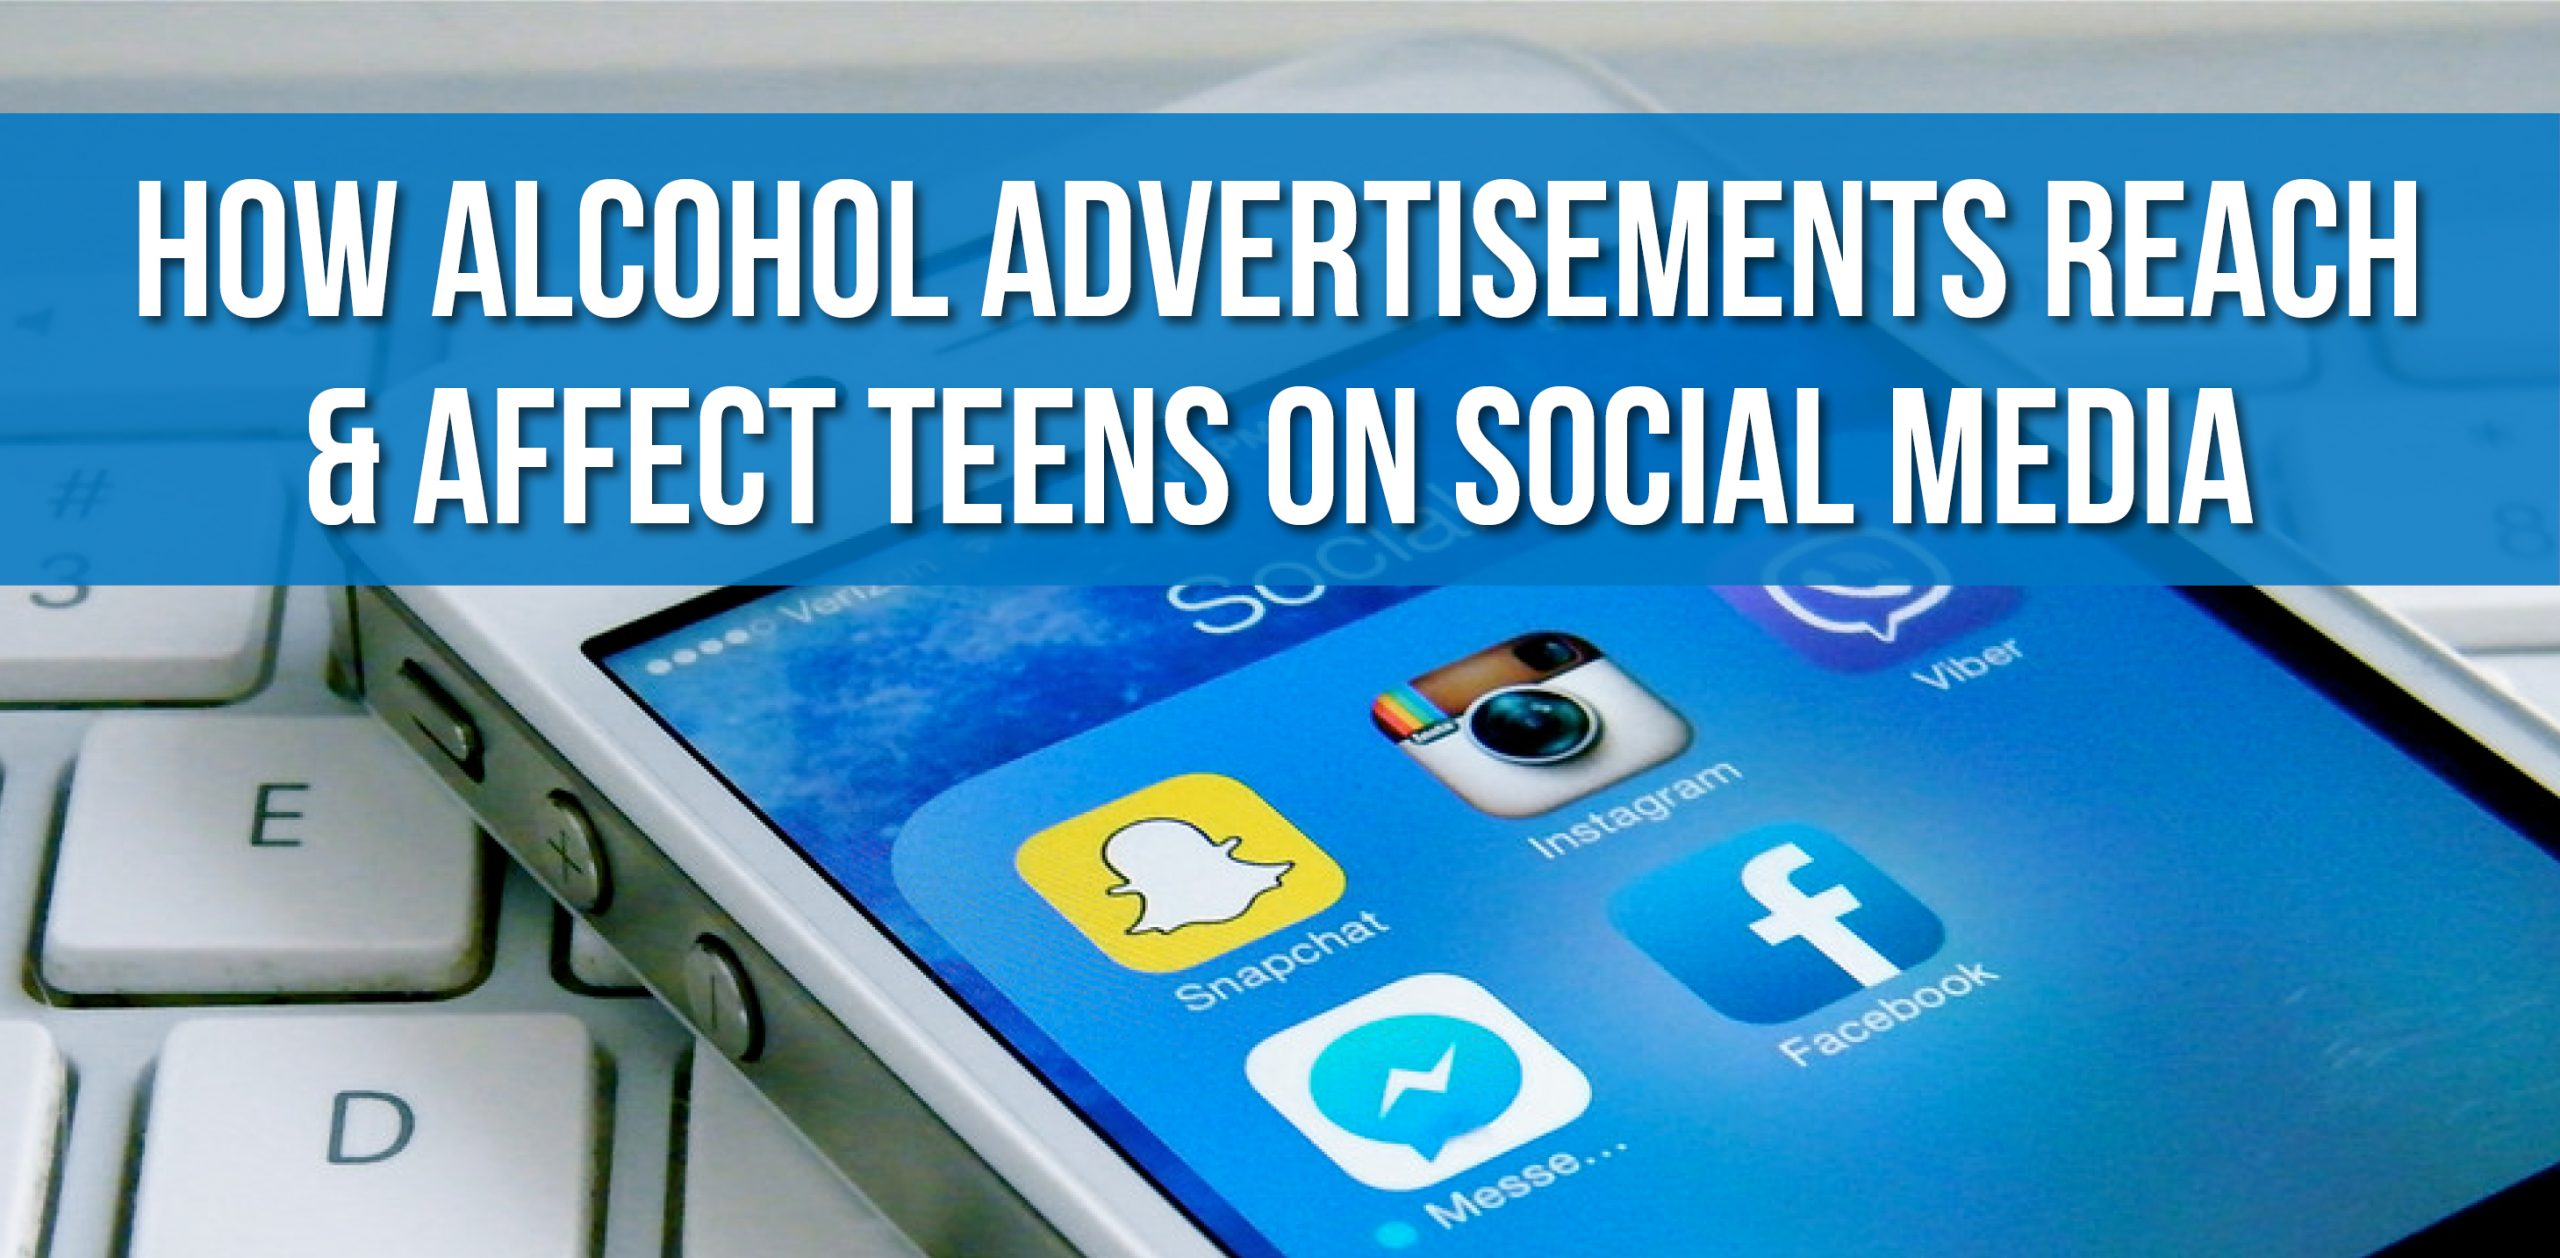 How alcohol advertisers reach teens through social media